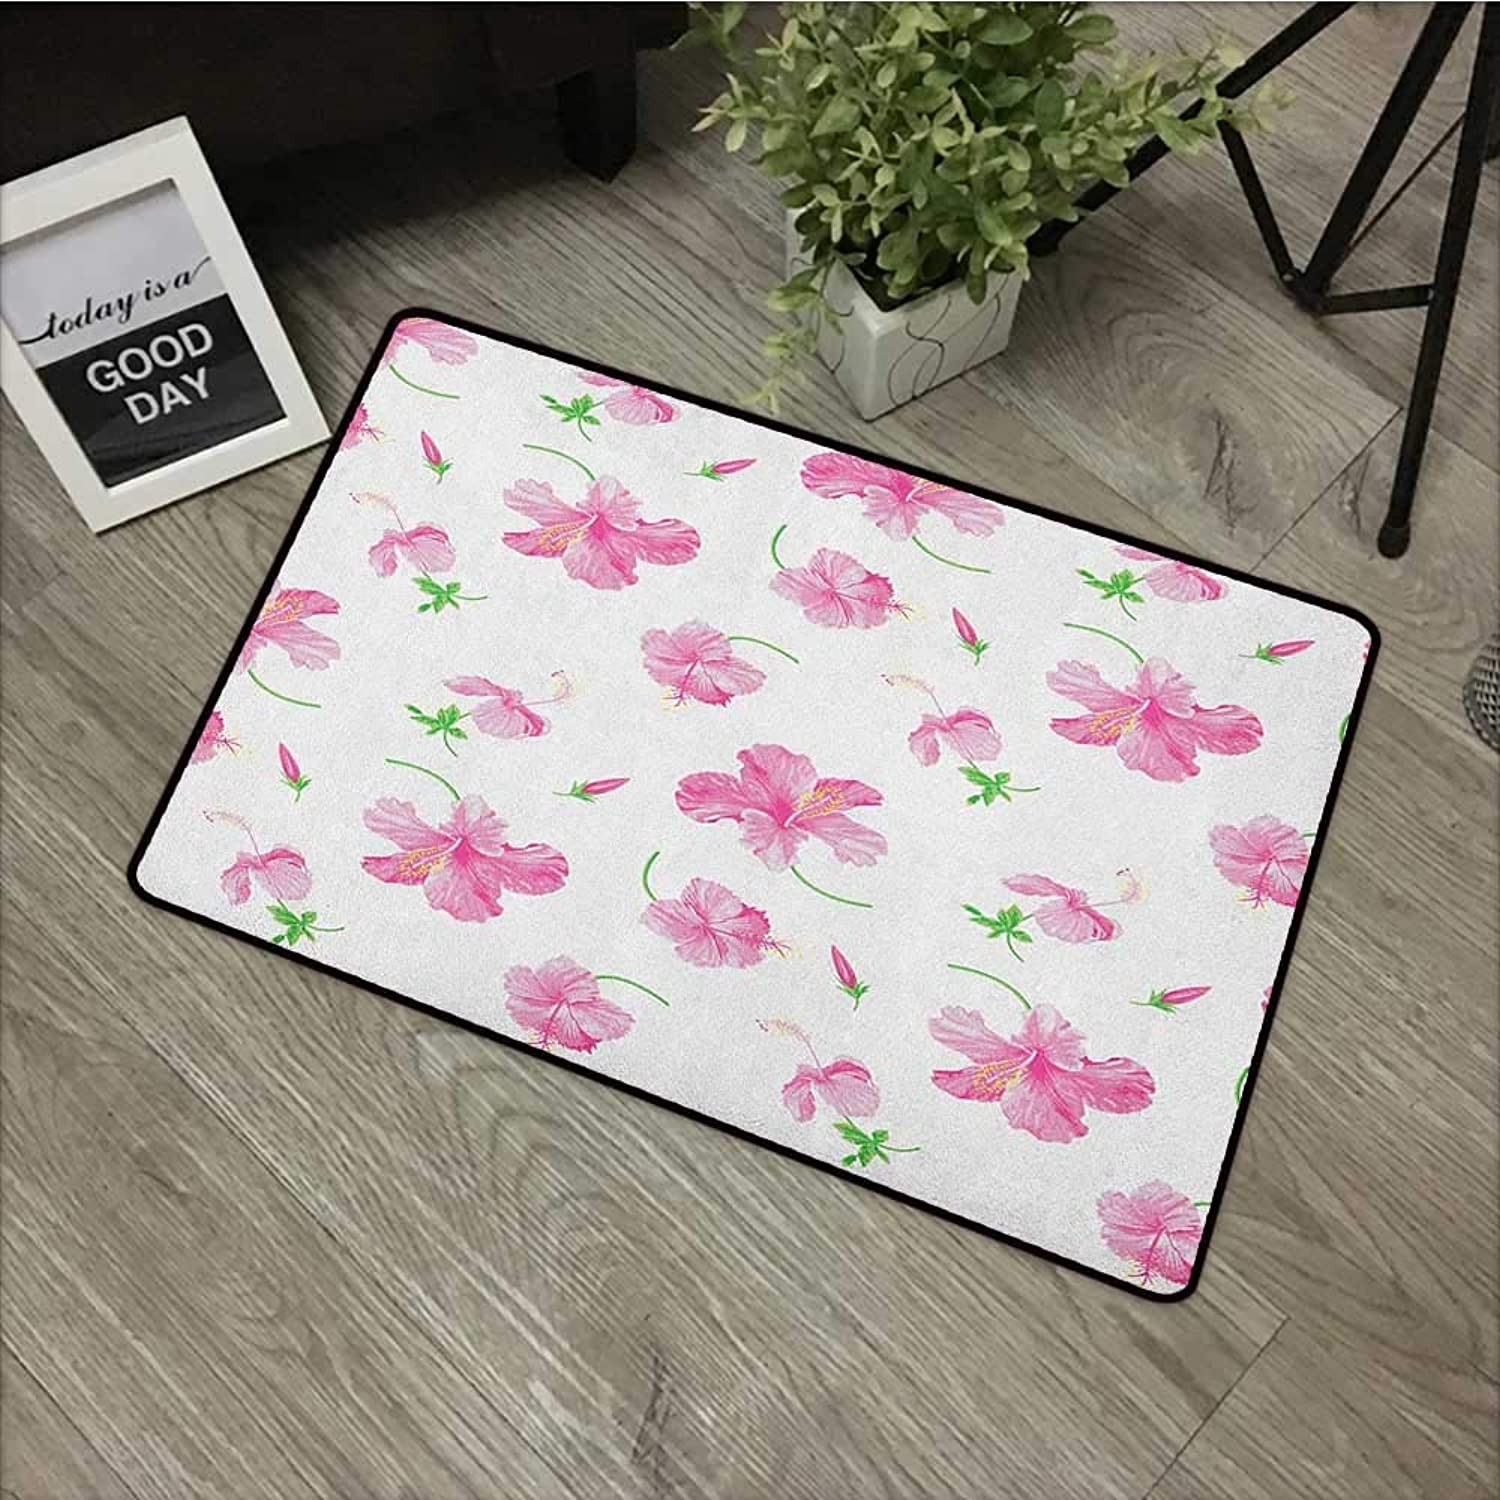 Bathroom Anti-Slip Door mat W35 x L59 INCH Flower,Hibiscus Bloom Flowers on a Plain Background with Floral Patterns in Country Style, Pink White with Non-Slip Backing Door Mat Carpet